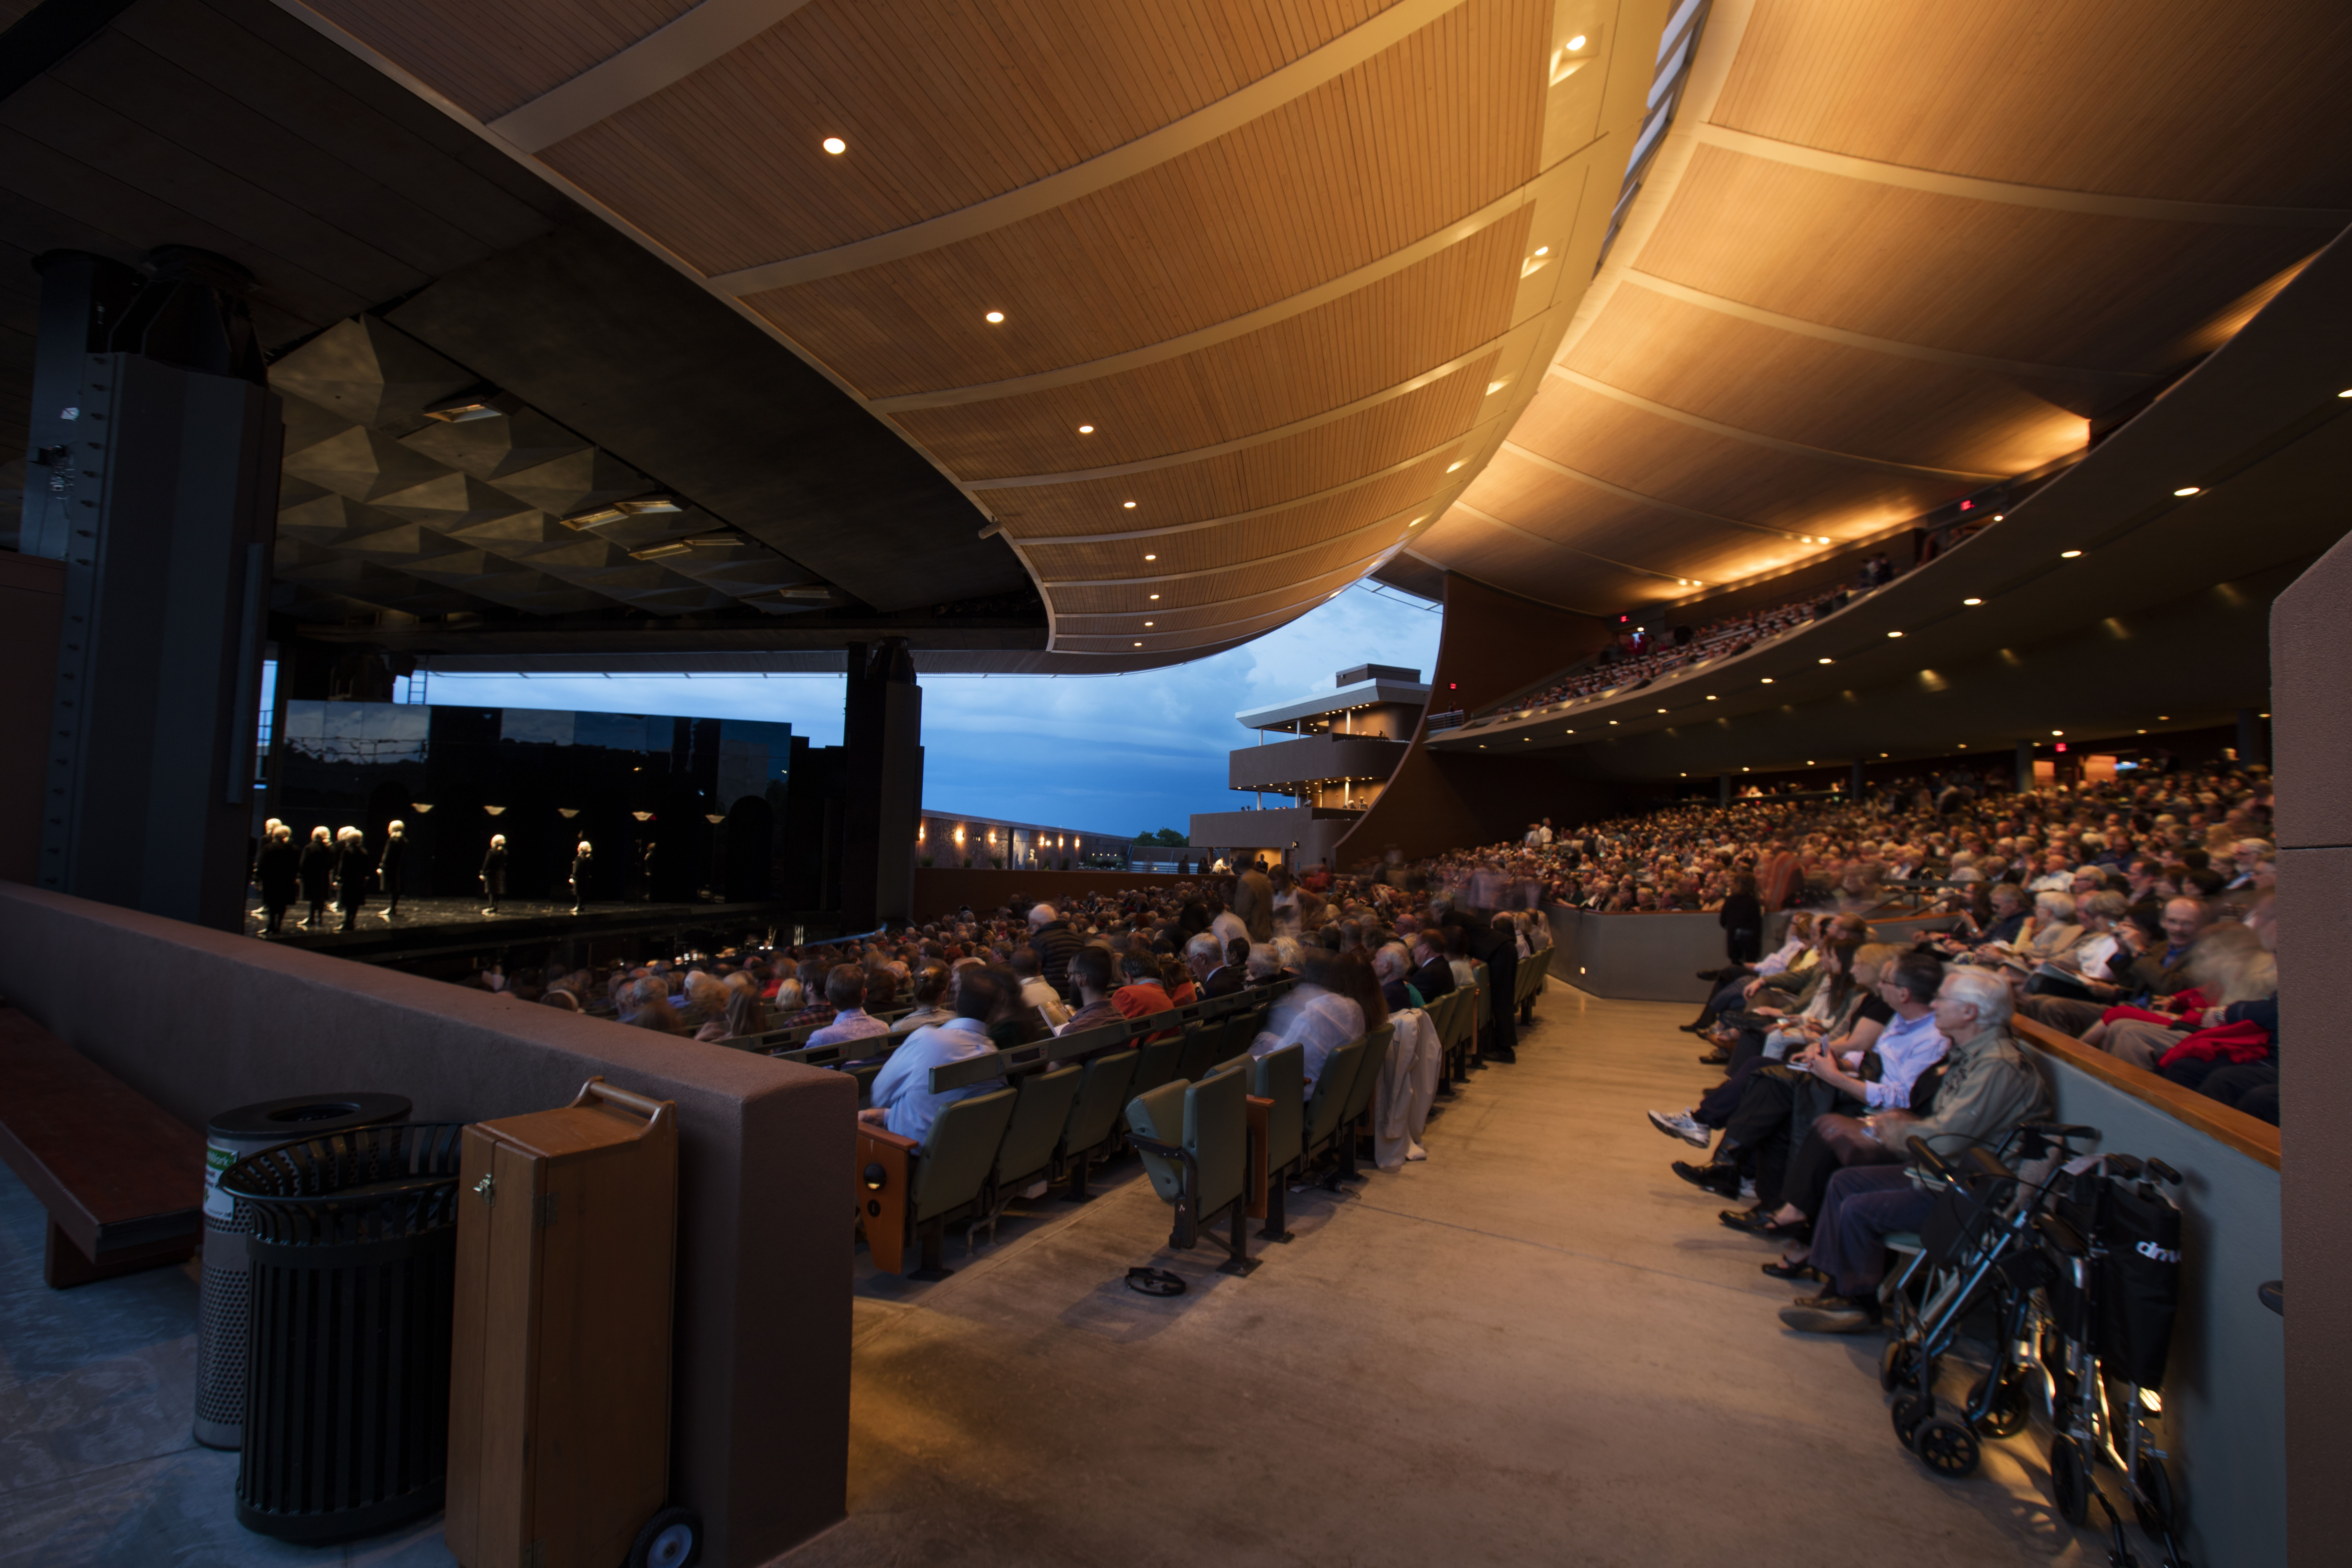 <p><em>Santa Fe Opera is known for its remarkable open-air performance space, considered one of the most beautiful in the world. Photo: © Kate Russell for Santa Fe Opera, 2016</em></p>